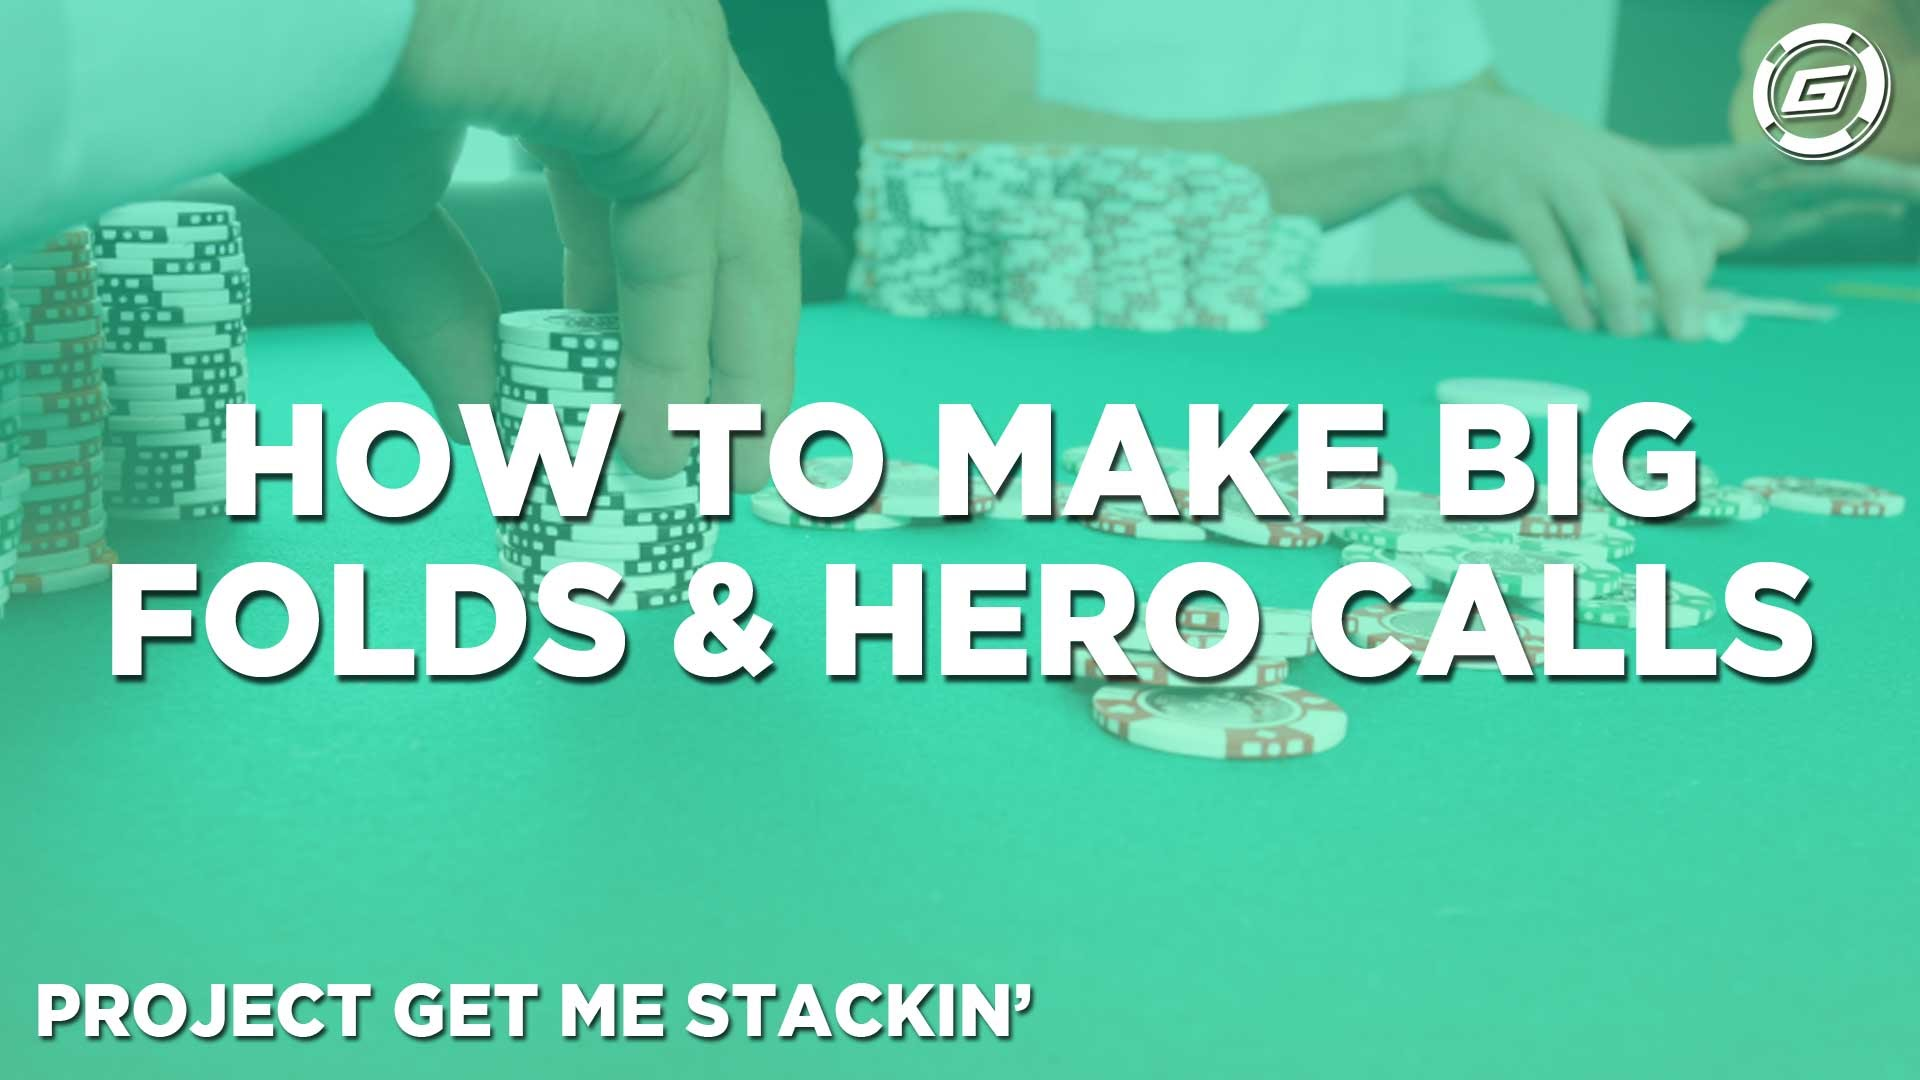 How To Make Big Folds And Hero Calls - LESSON #4